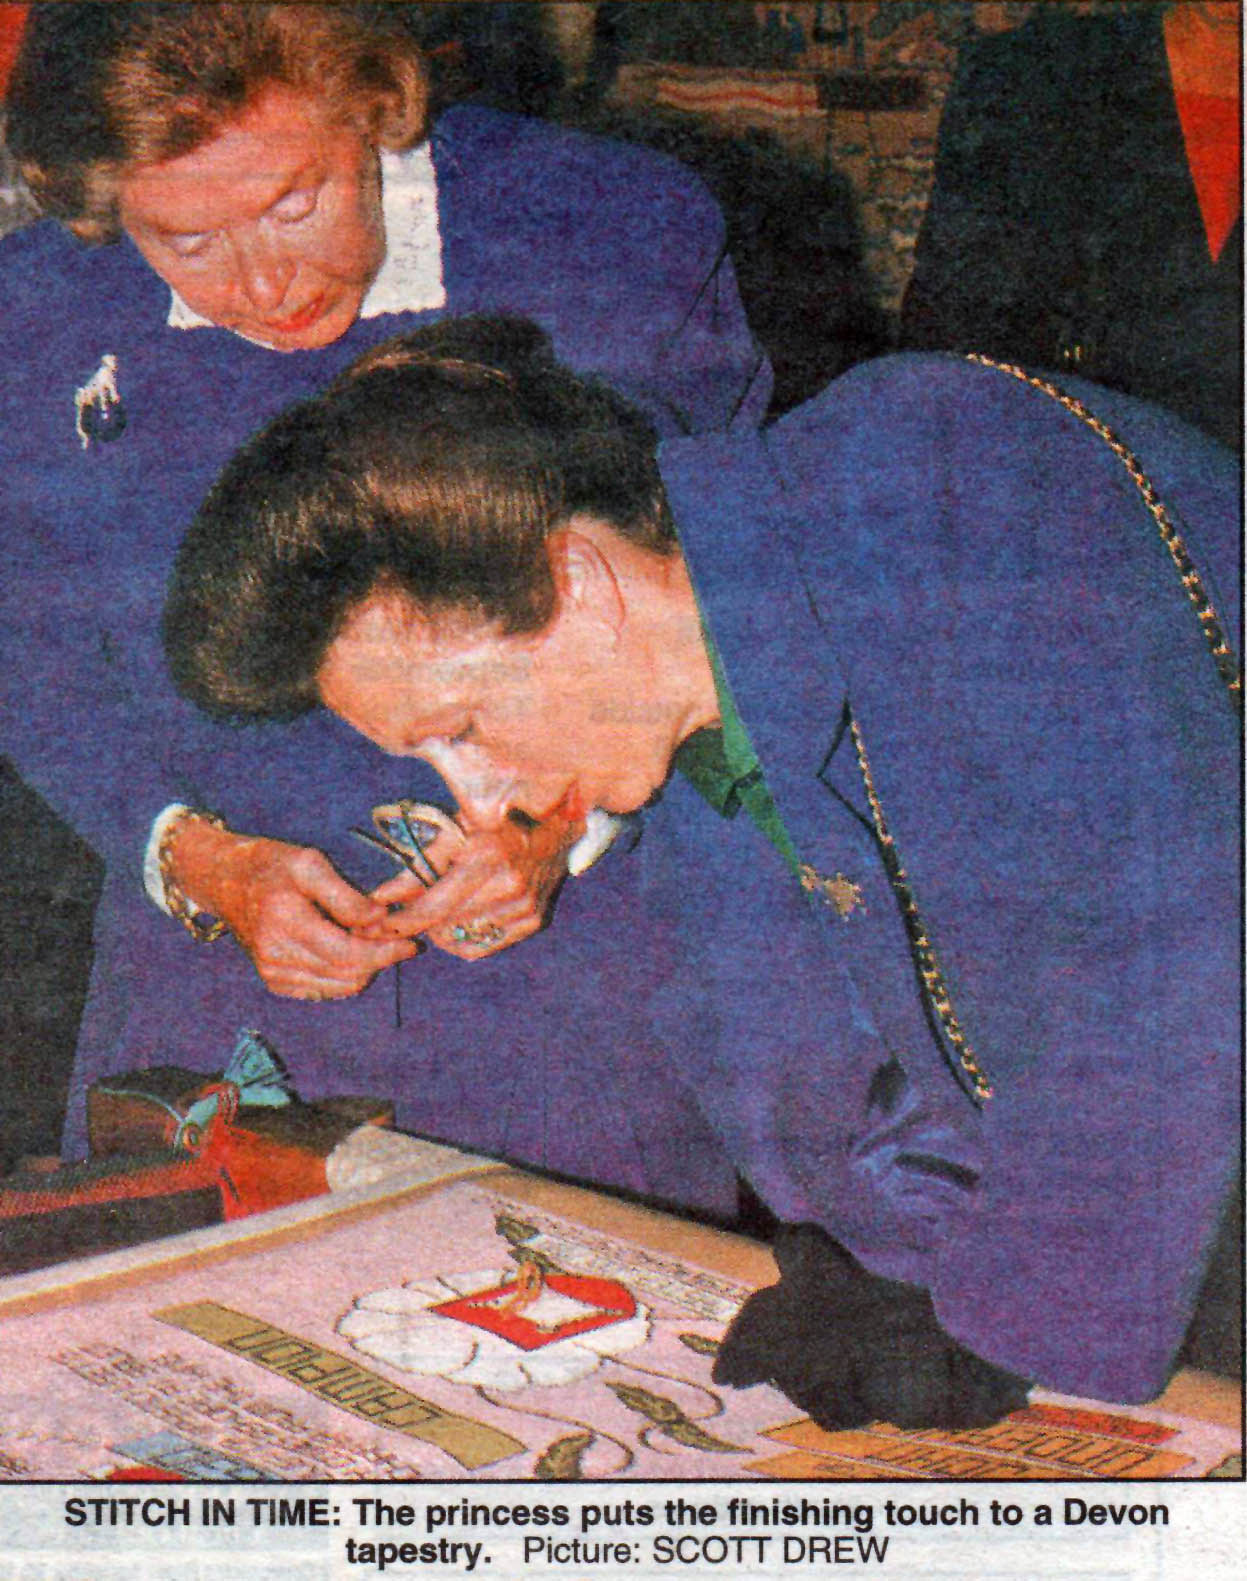 Sept 1994 - Princess Royal's Stitch in the 1630 Panel